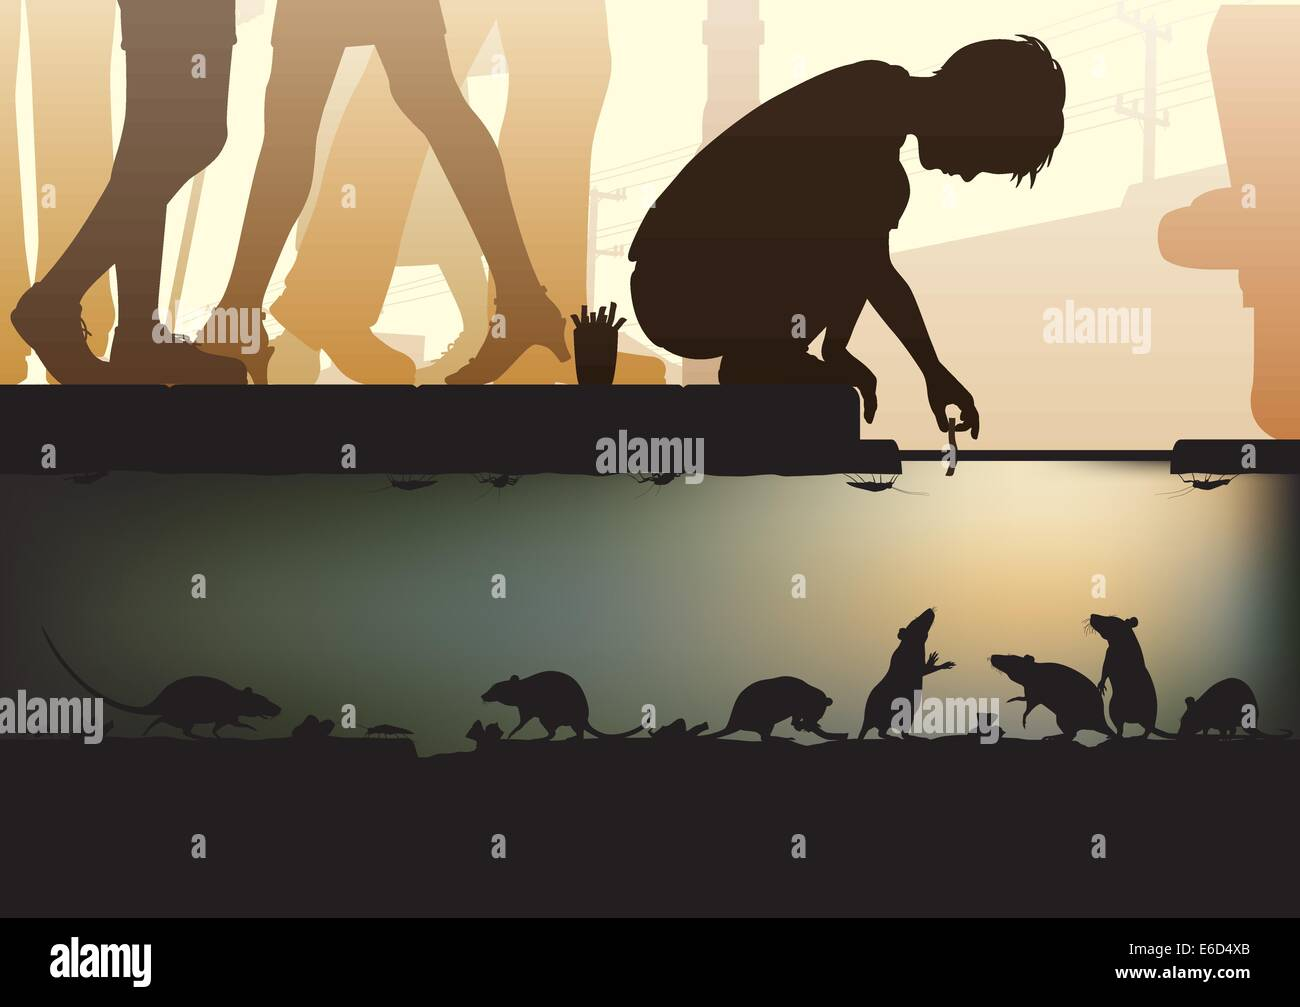 Editable vector illustration of a young boy feeding rats in a city sewer made using a gradient mesh - Stock Vector